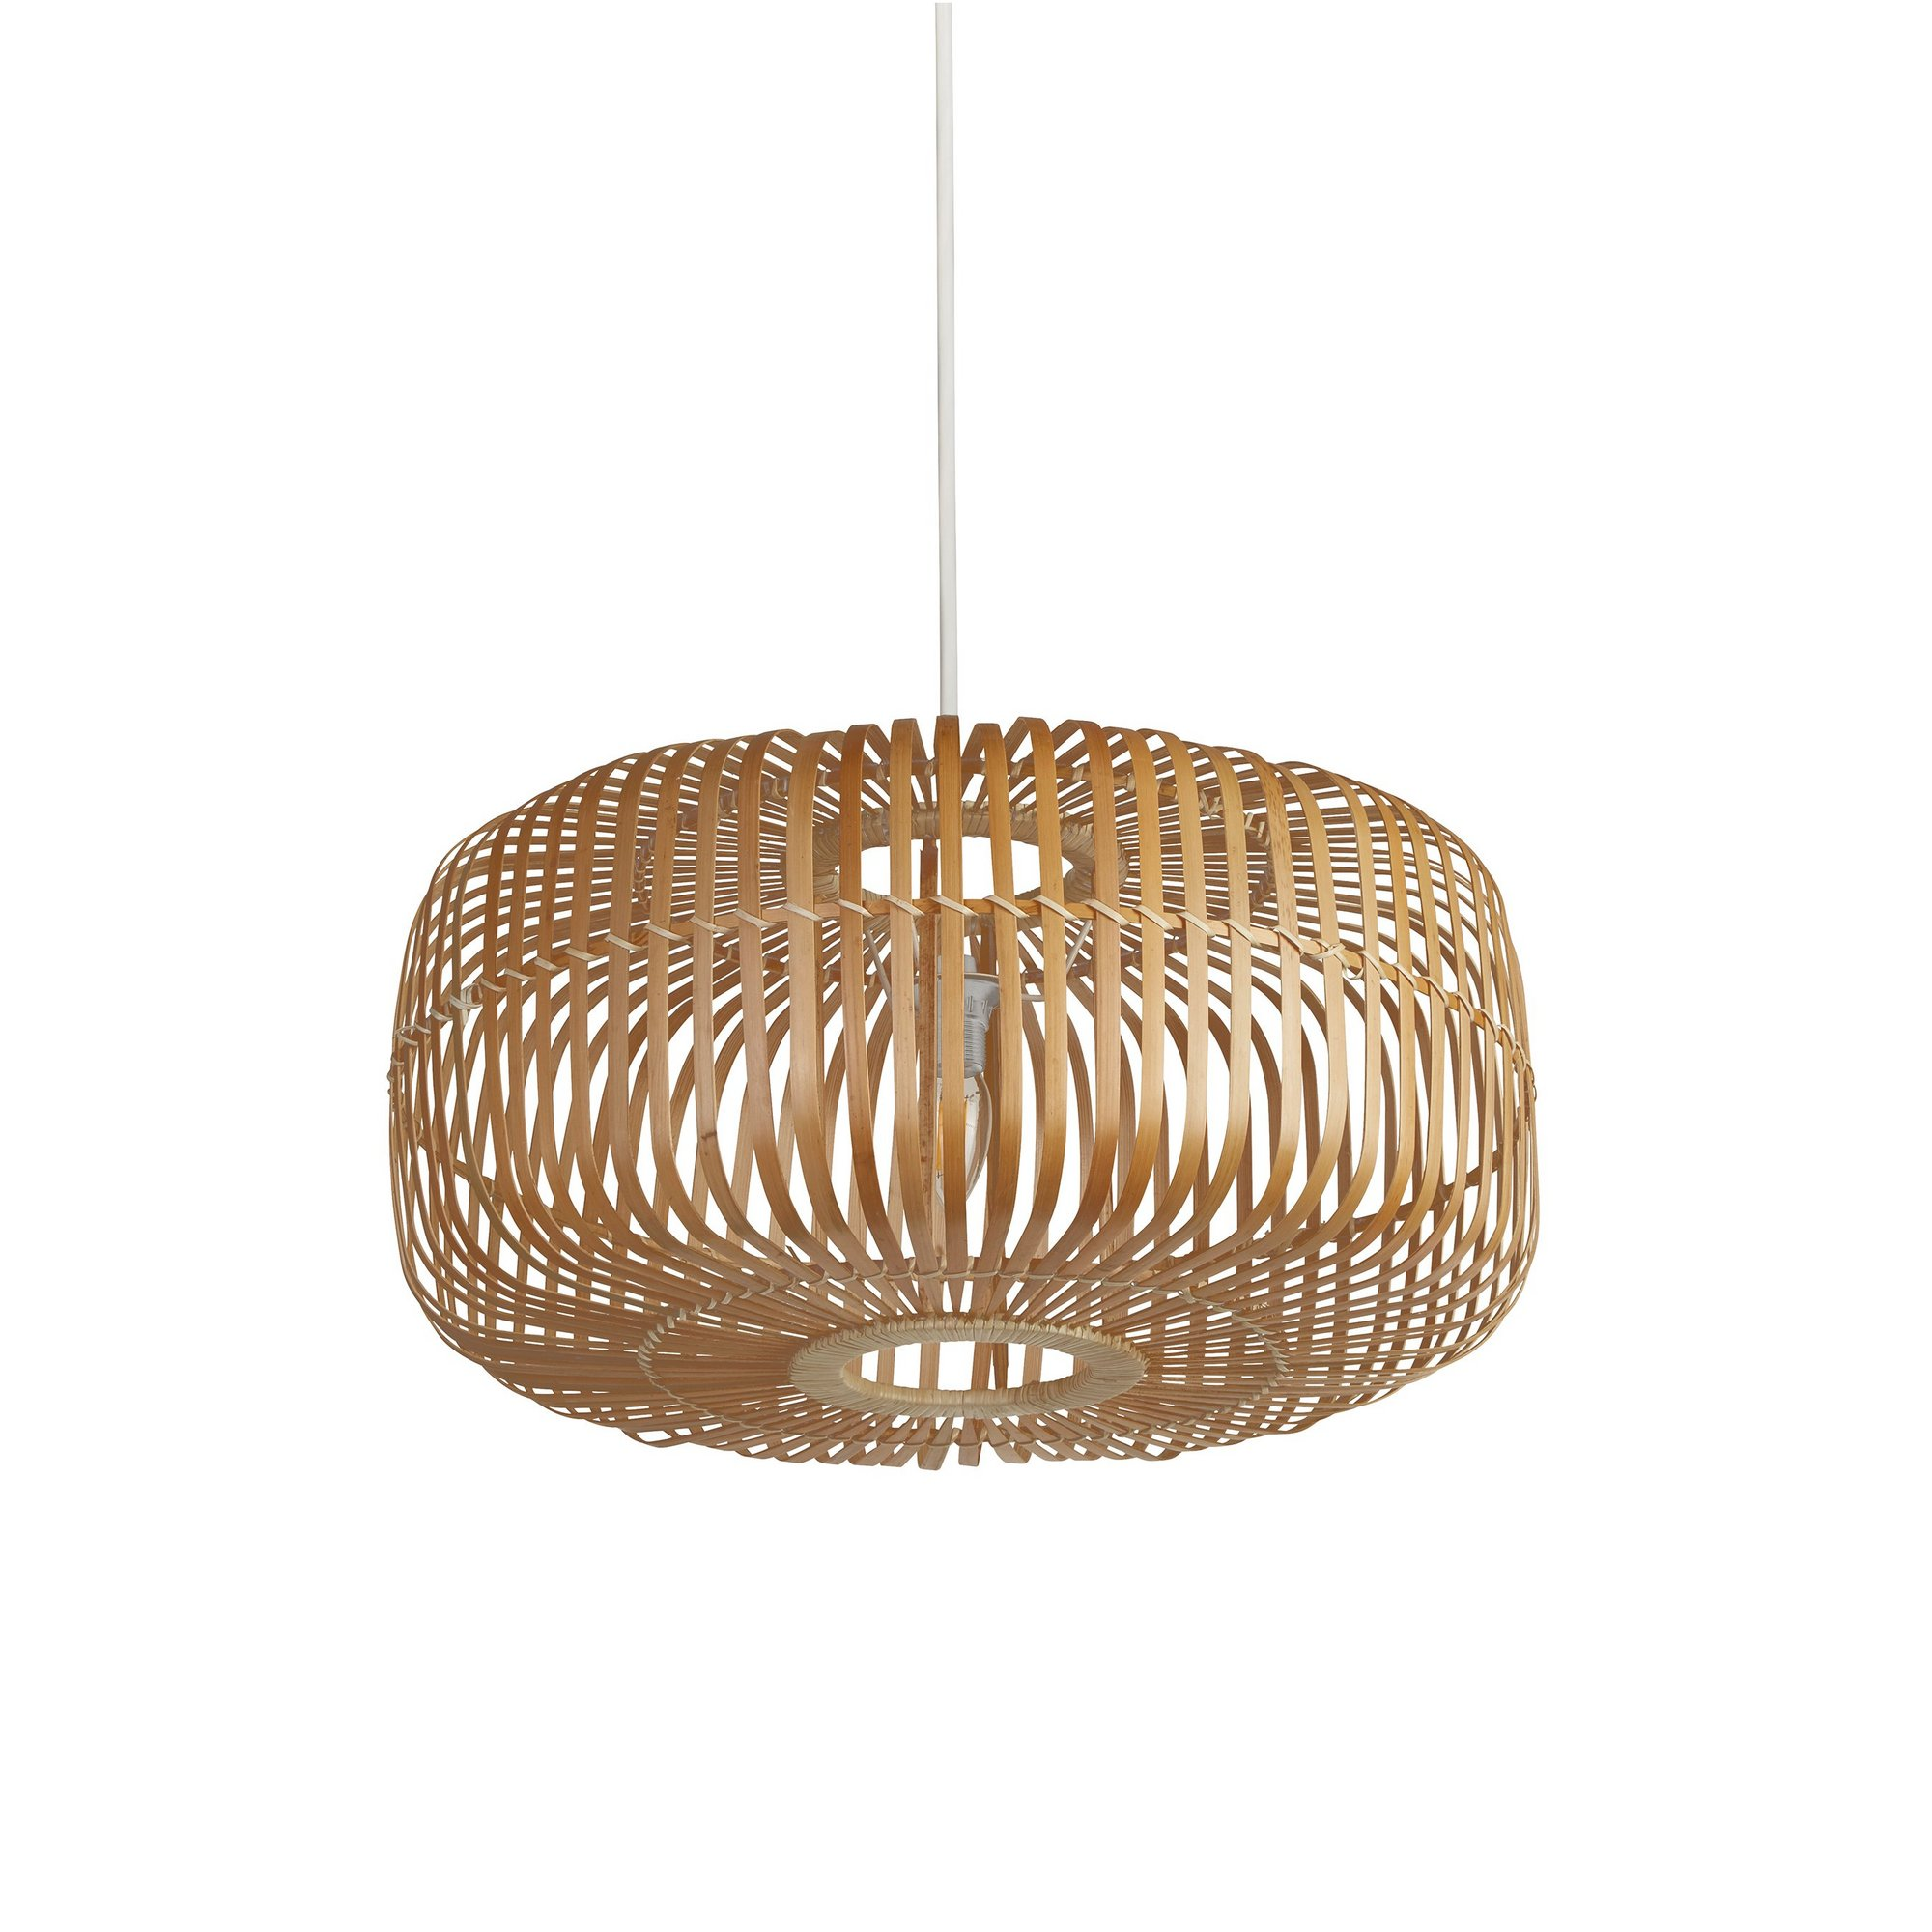 Image of Bamboo Drum Easy Fit Light Shade